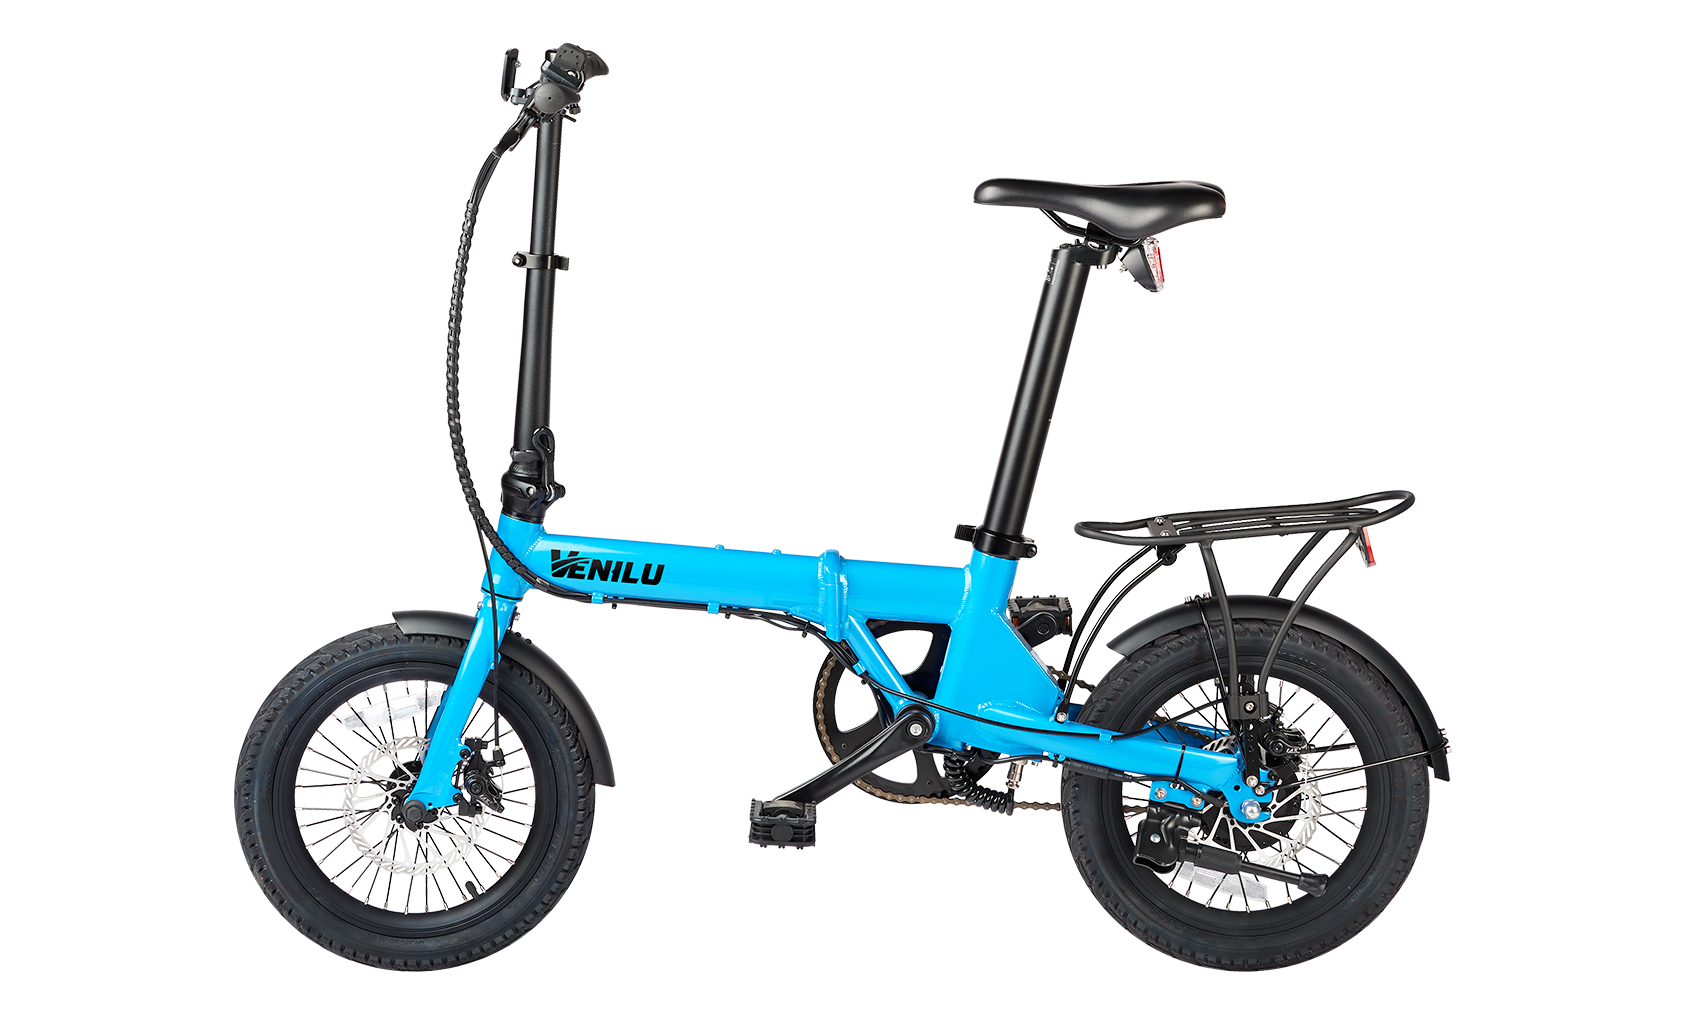 Venilu Urbana Sky Blue – The Lightest Folding E-Bike 16″ 13,6kg